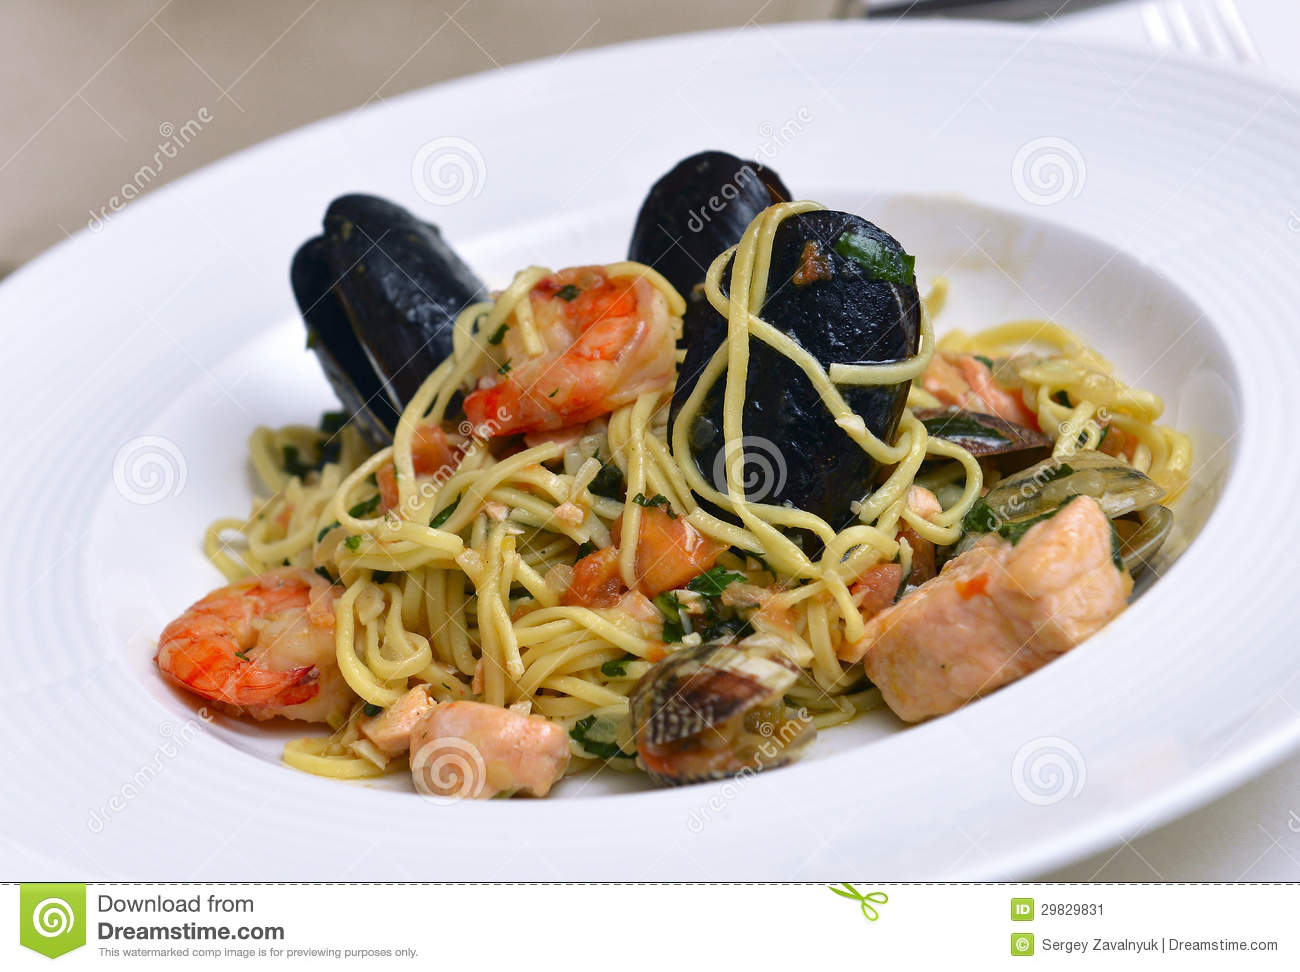 Fresh Pasta With Seafood Stock Image - Image: 29829831